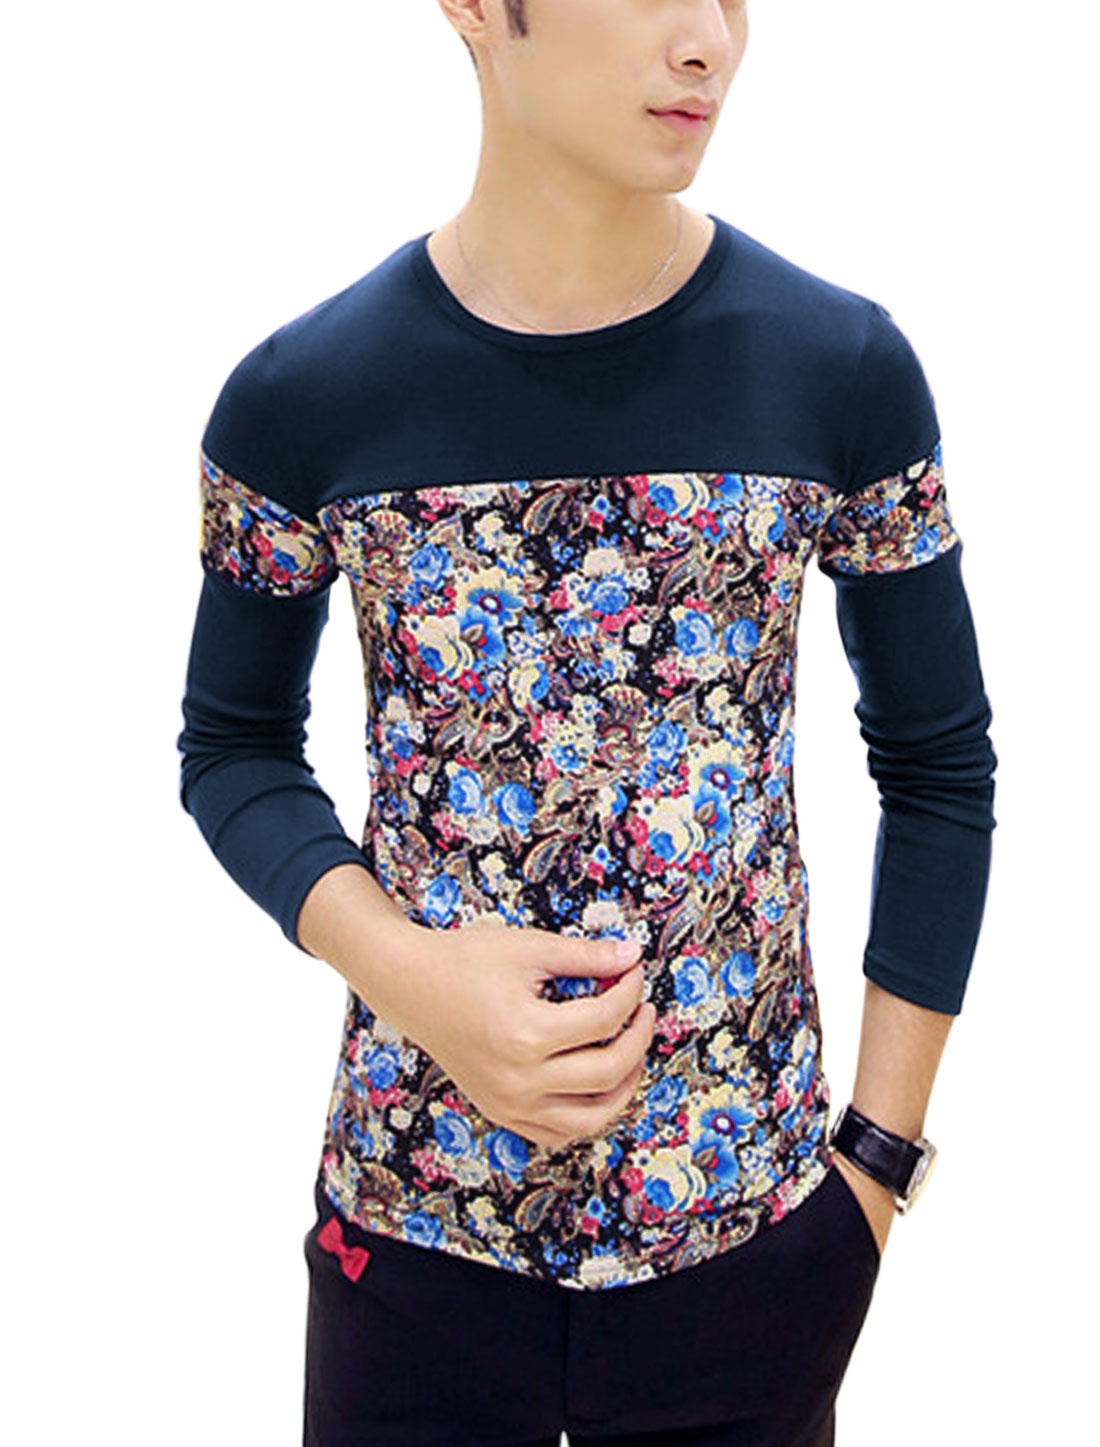 Men Floral Paisleys Pattern Long Sleeves Spliced Design Shirt Navy Blue S